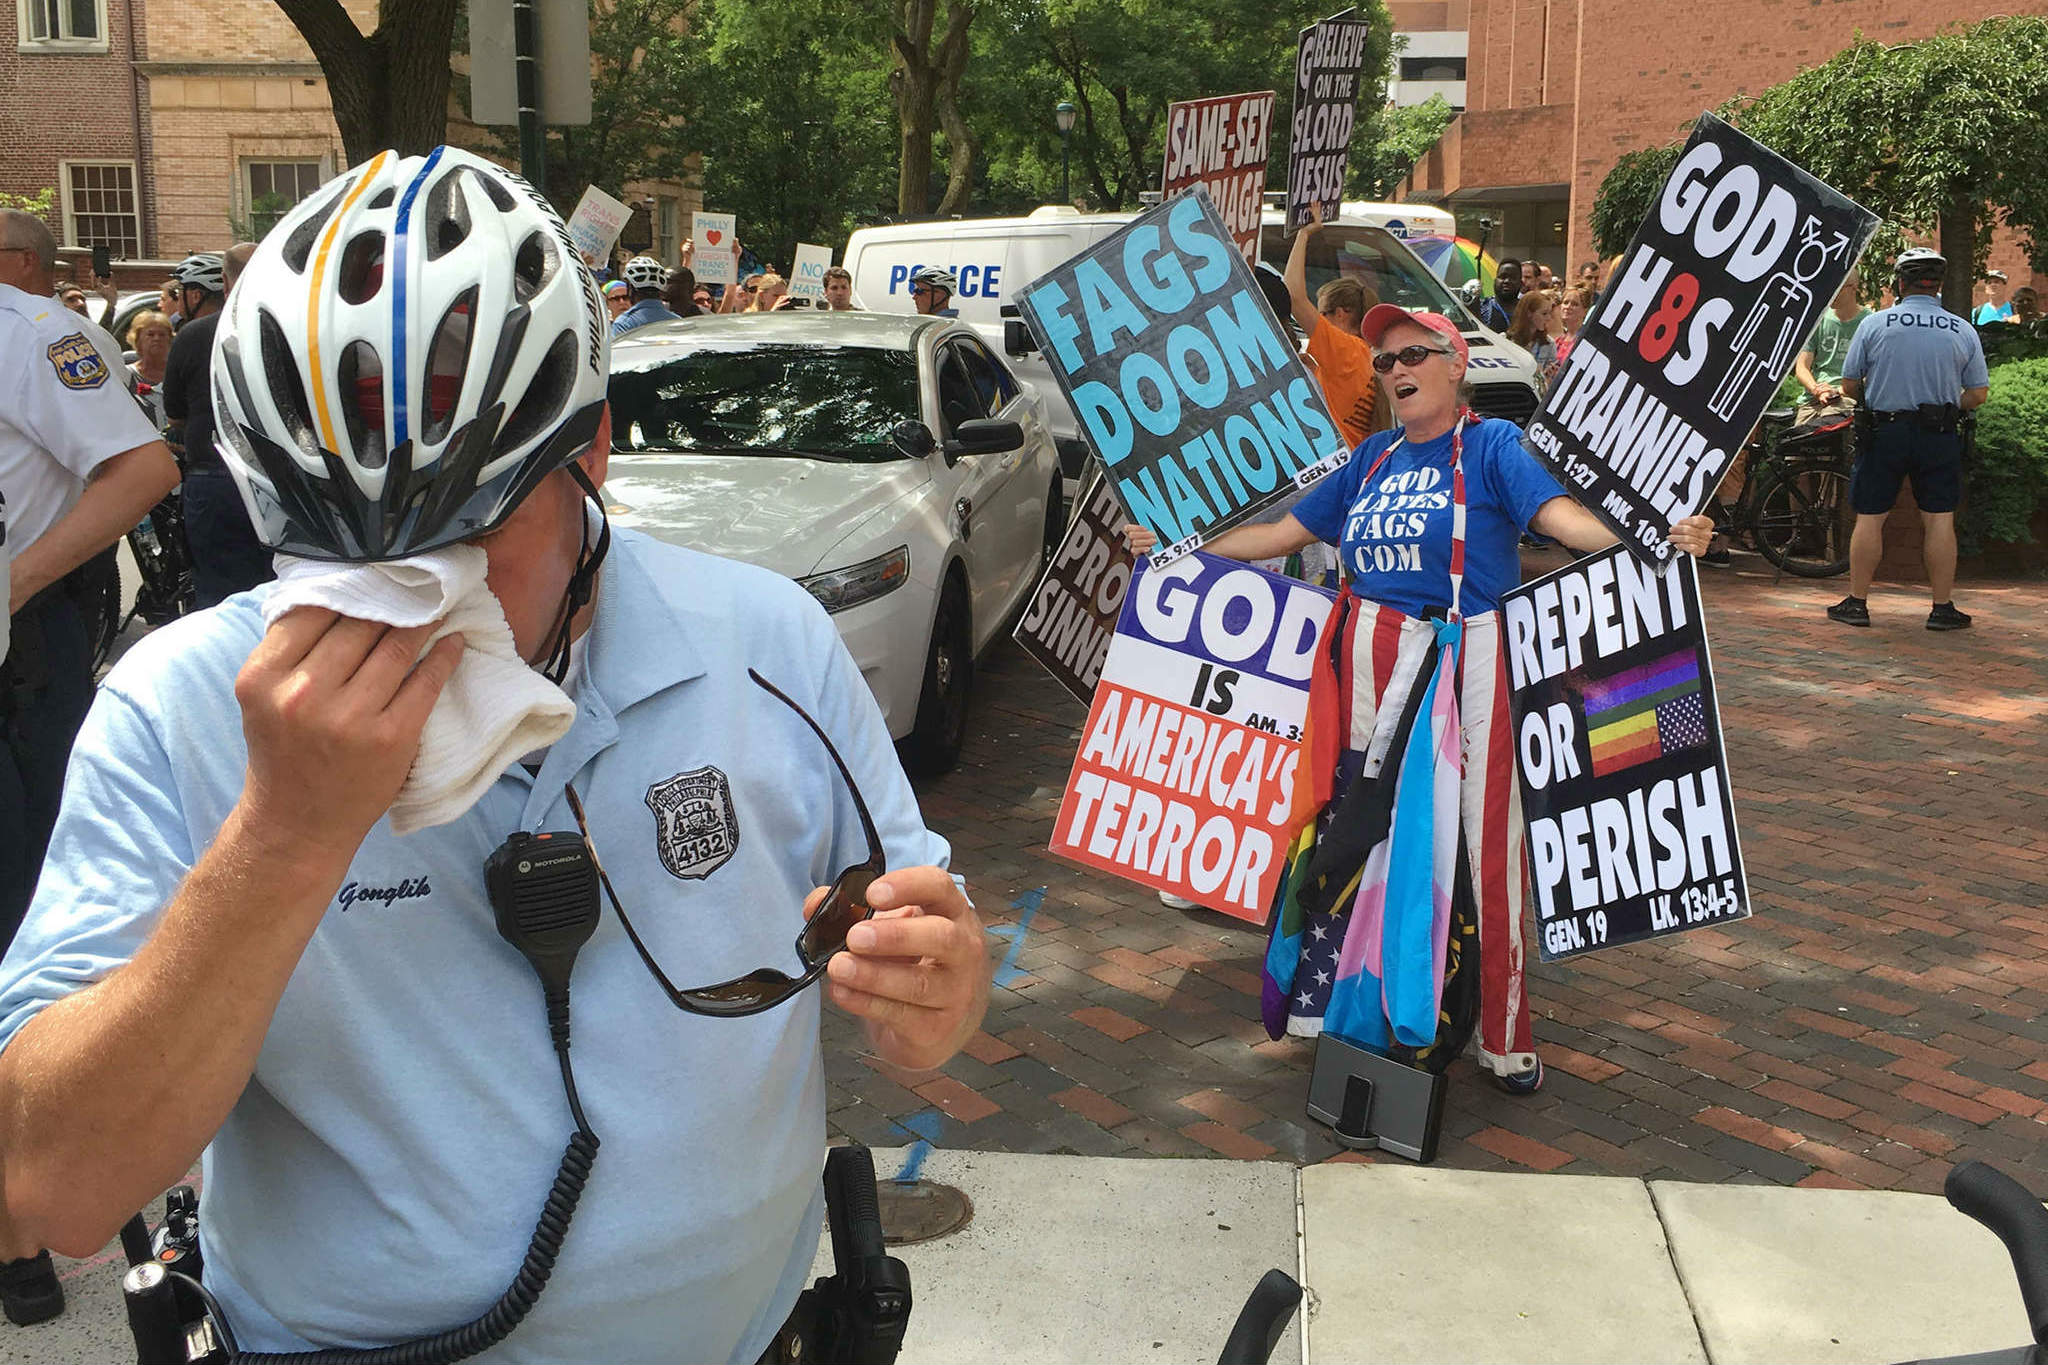 A policeman wipes his face as Westboro Baptist Church members protest at Eighth and Locust Streets. Dozens showed up for a counterprotest. Occupy DNC Rally and March at FDR Park is scheduled through 7:30 p.m. today.